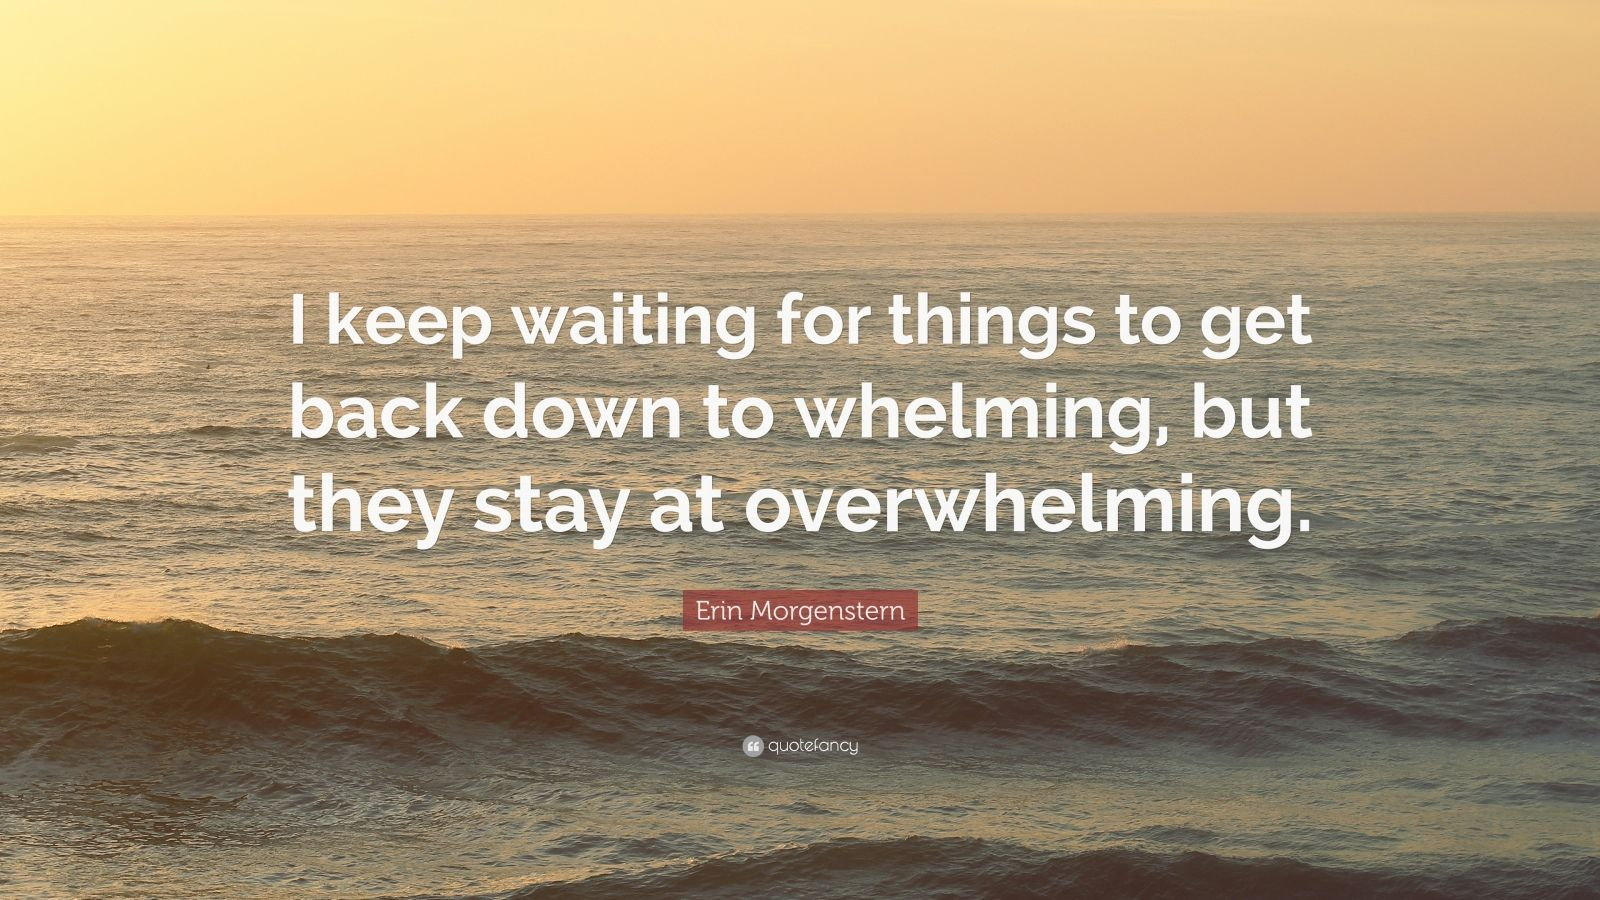 """Erin Morgenstern Quote: """"I keep waiting for things to get back down to whelming, but they stay at overwhelming."""""""